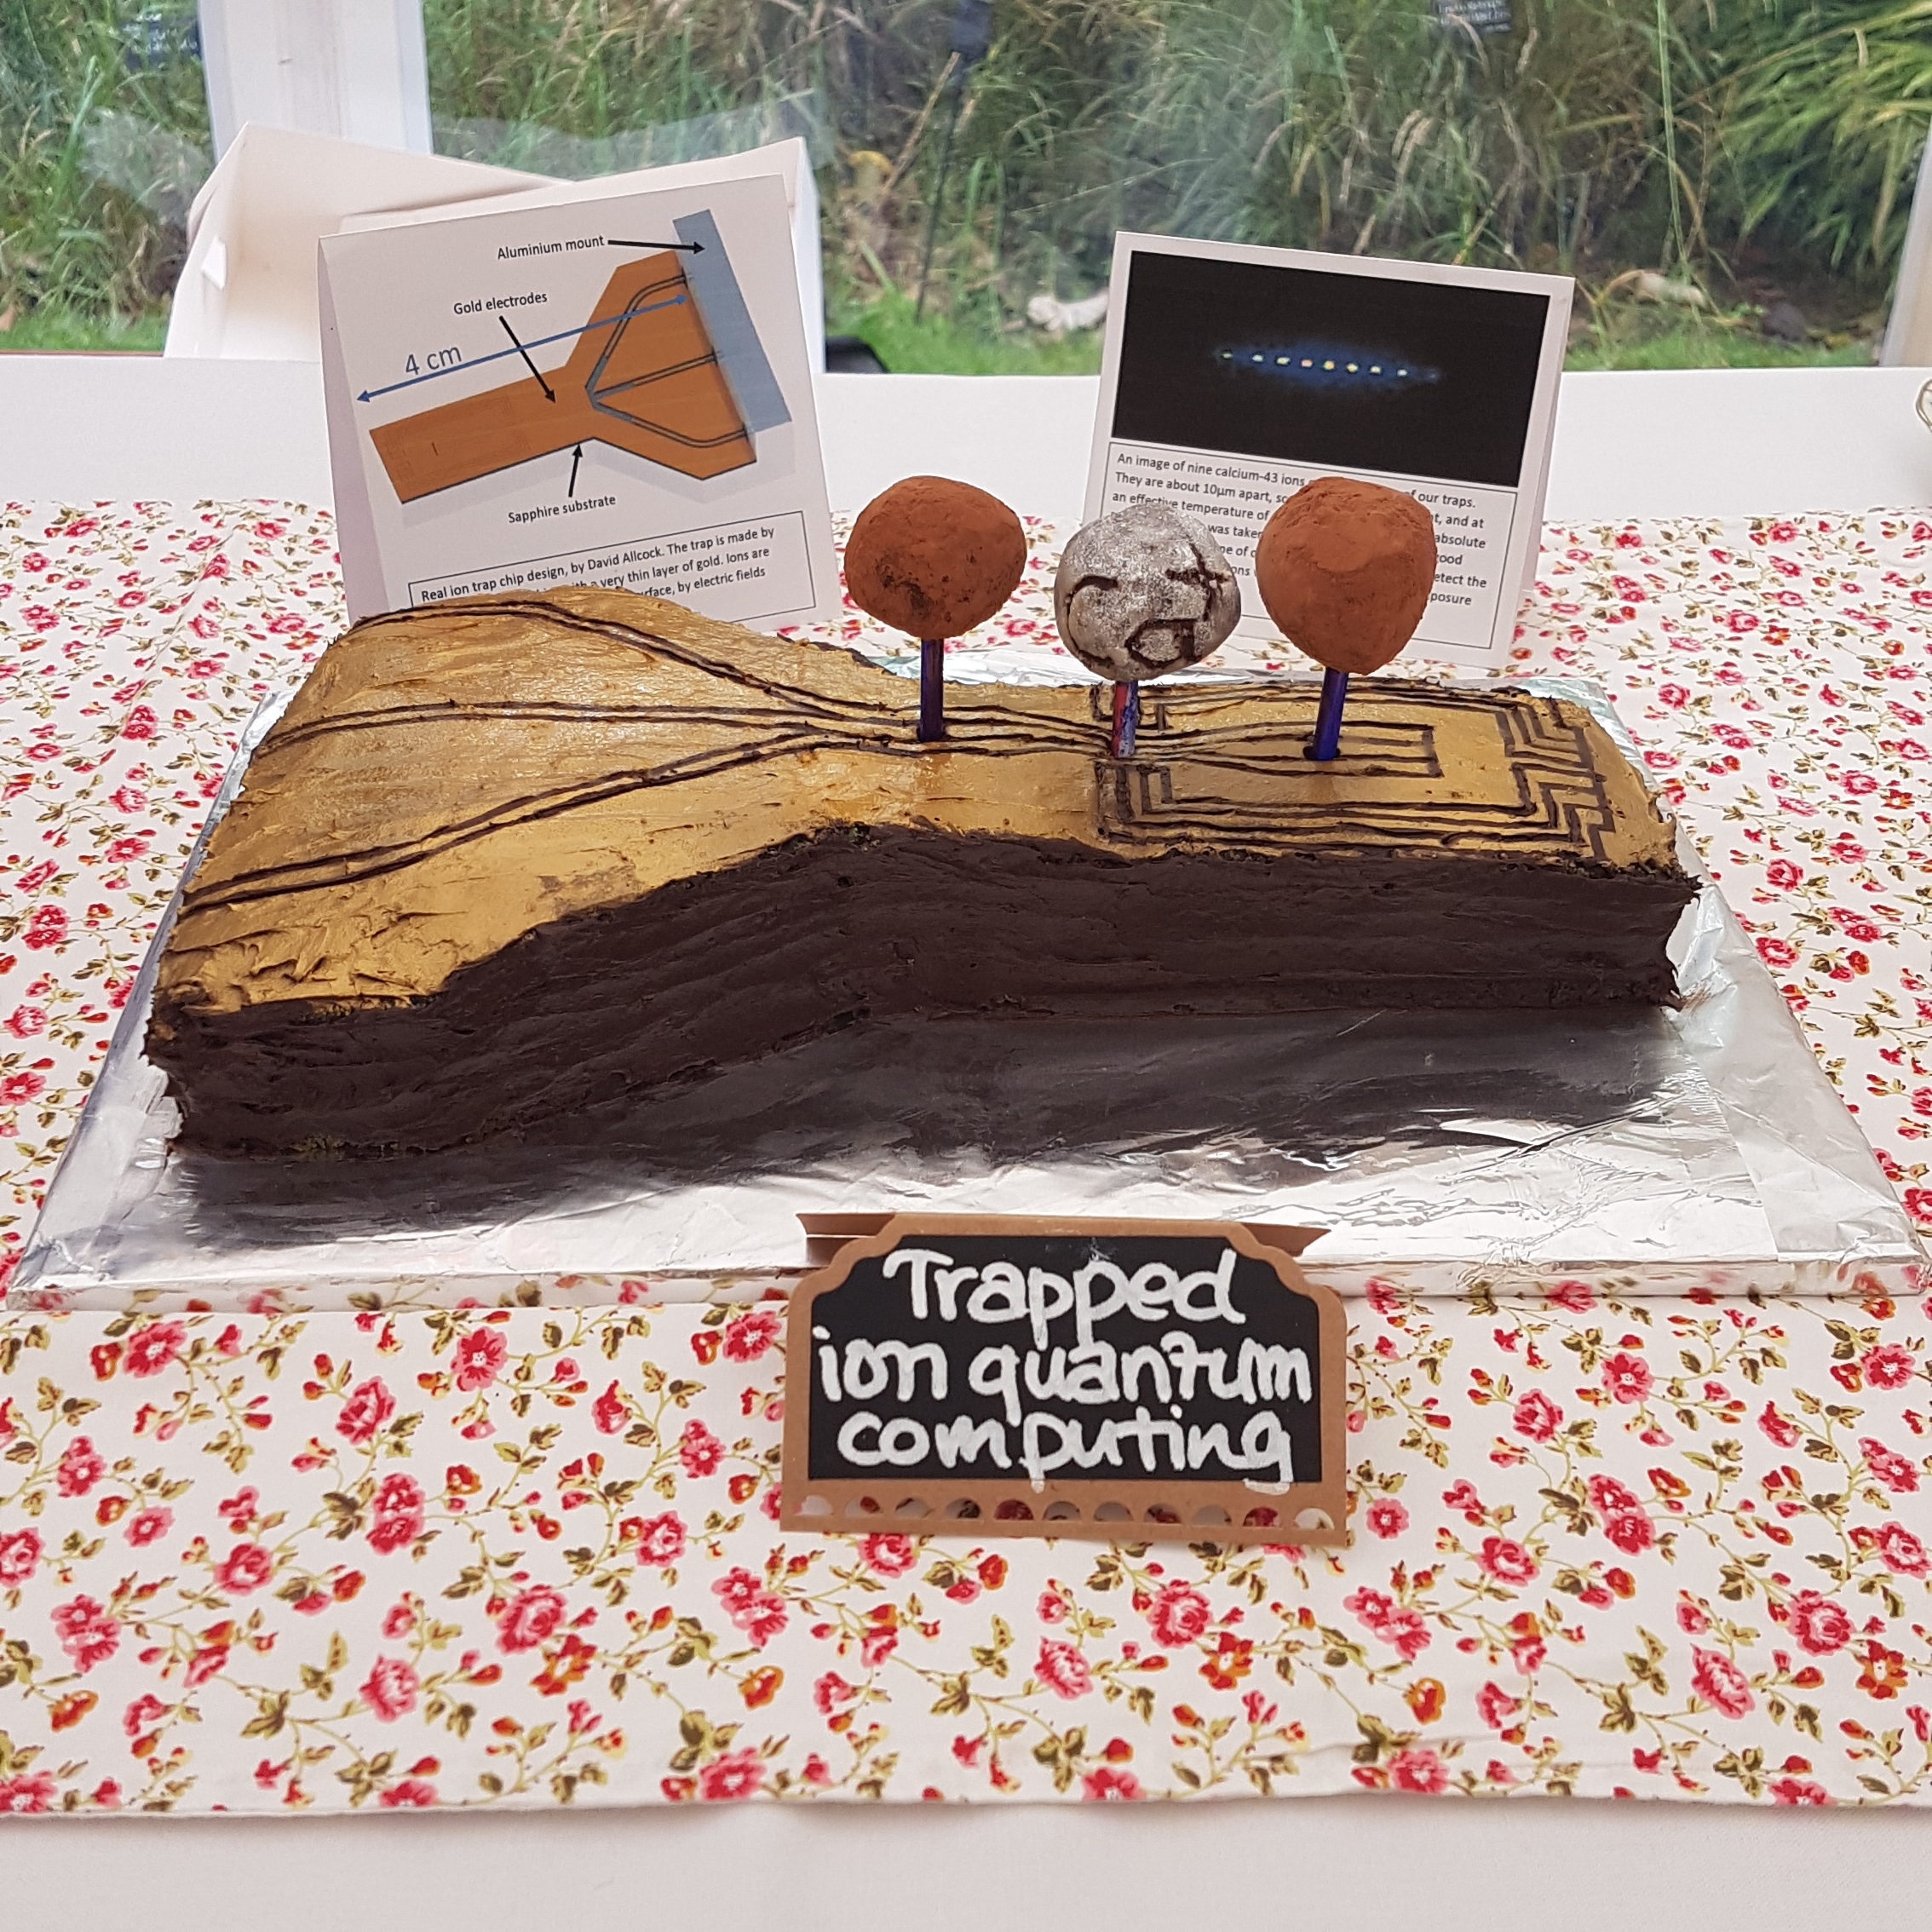 Amy Hughes' Trapped Ion Quantum Computing Cake!